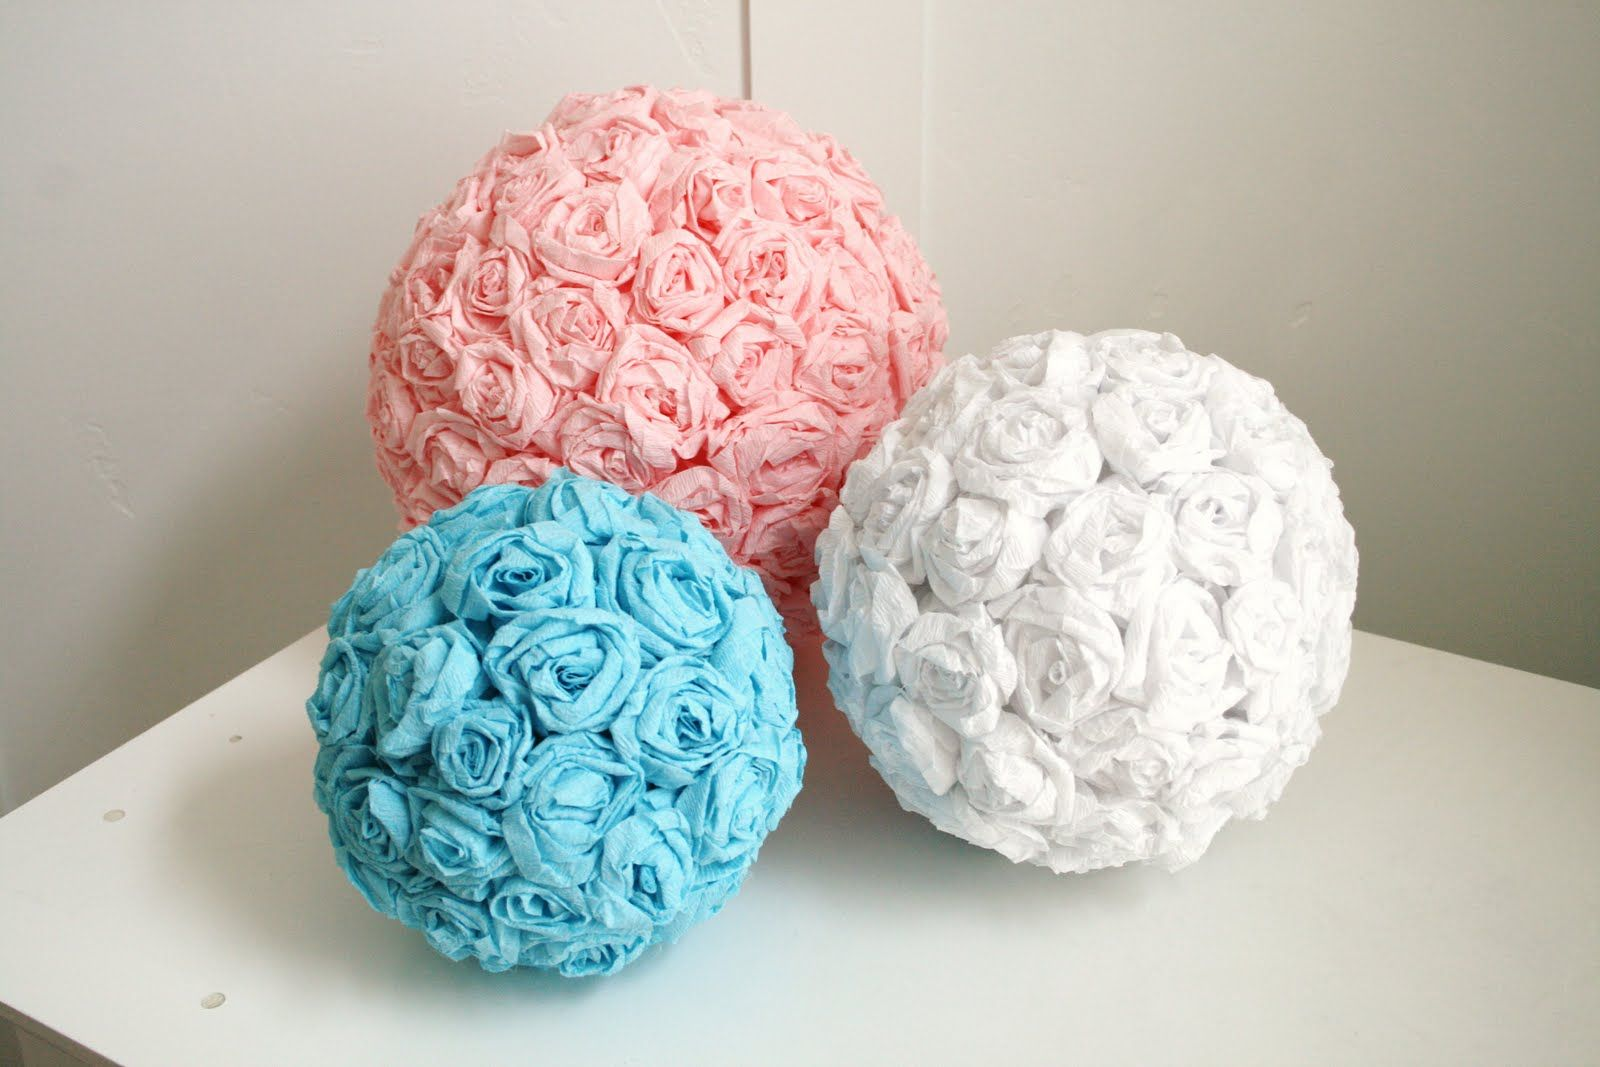 Diy crepe paper flower pomanders flower ball crepe paper and diy hanging roses flower ball tutorial httpthehouseofsmiths201002hanging roses i was browsing blogsml mightylinksfo